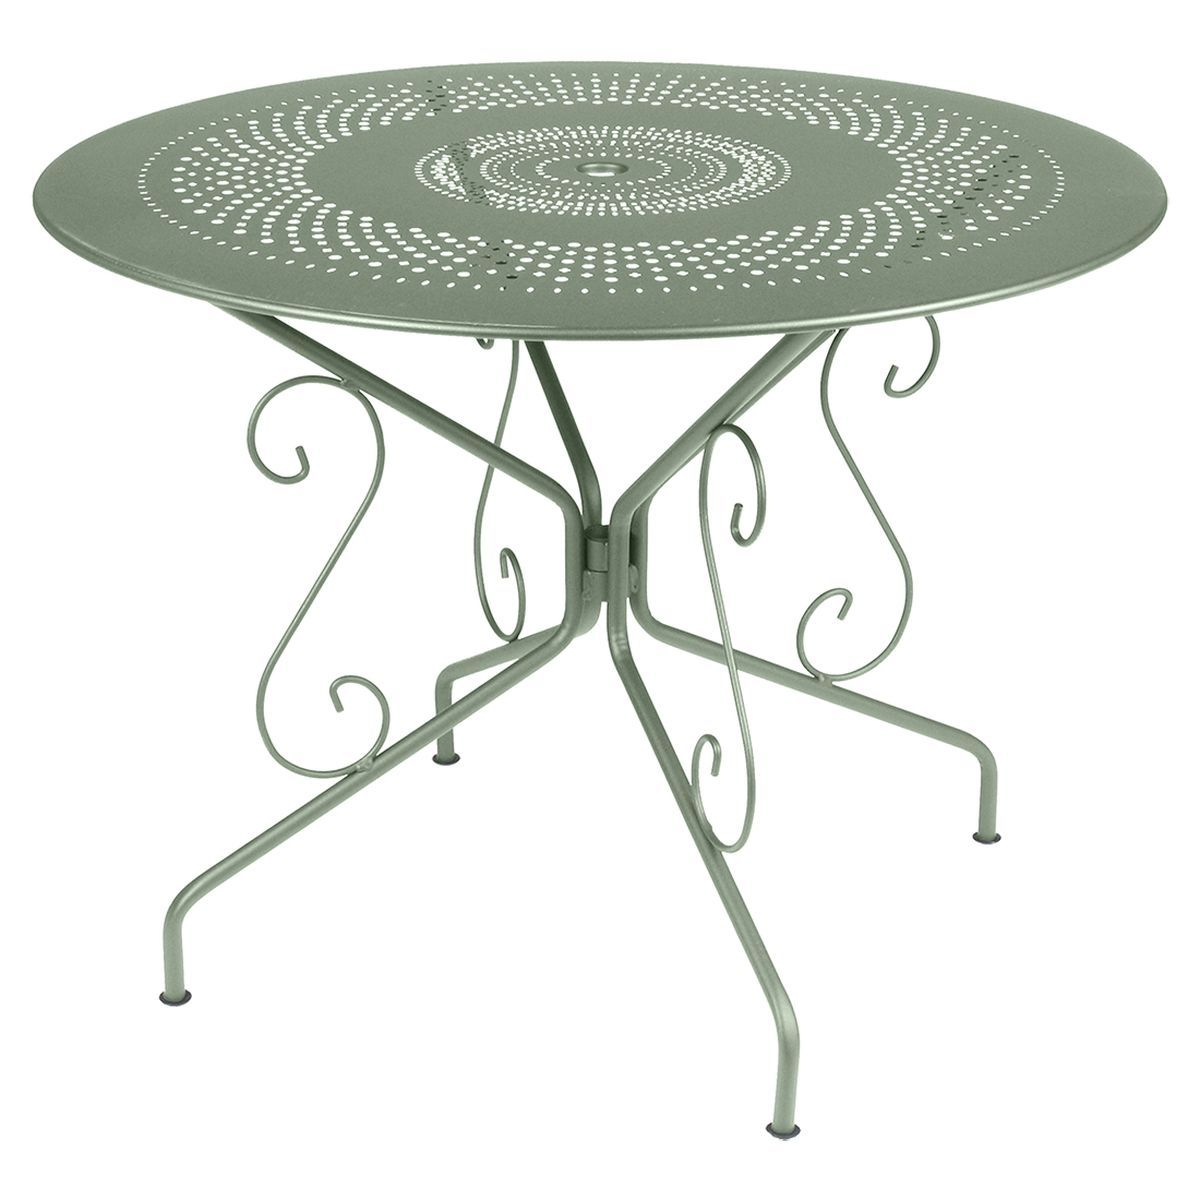 Salon De Jardin Montmartre Montmartre Outdoor Table Round 96cm Montmartre French